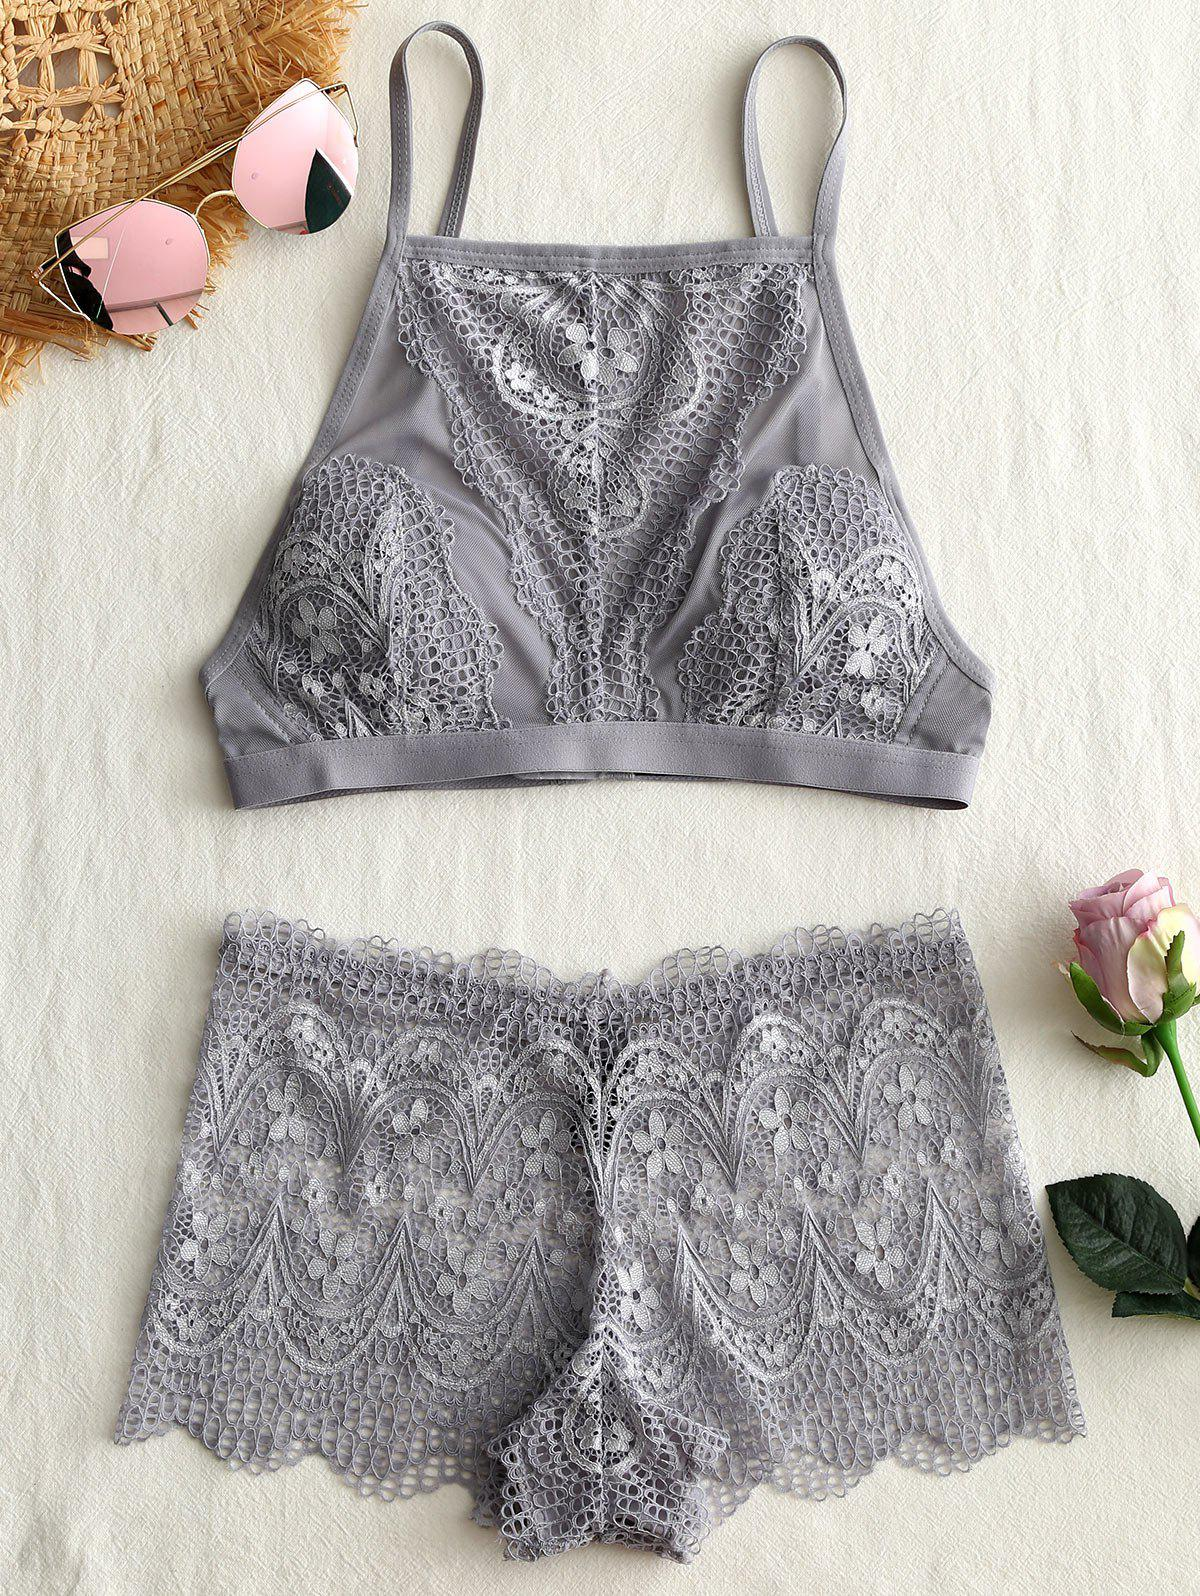 Lace See Thru Cami Bra Set - GRAY 85B